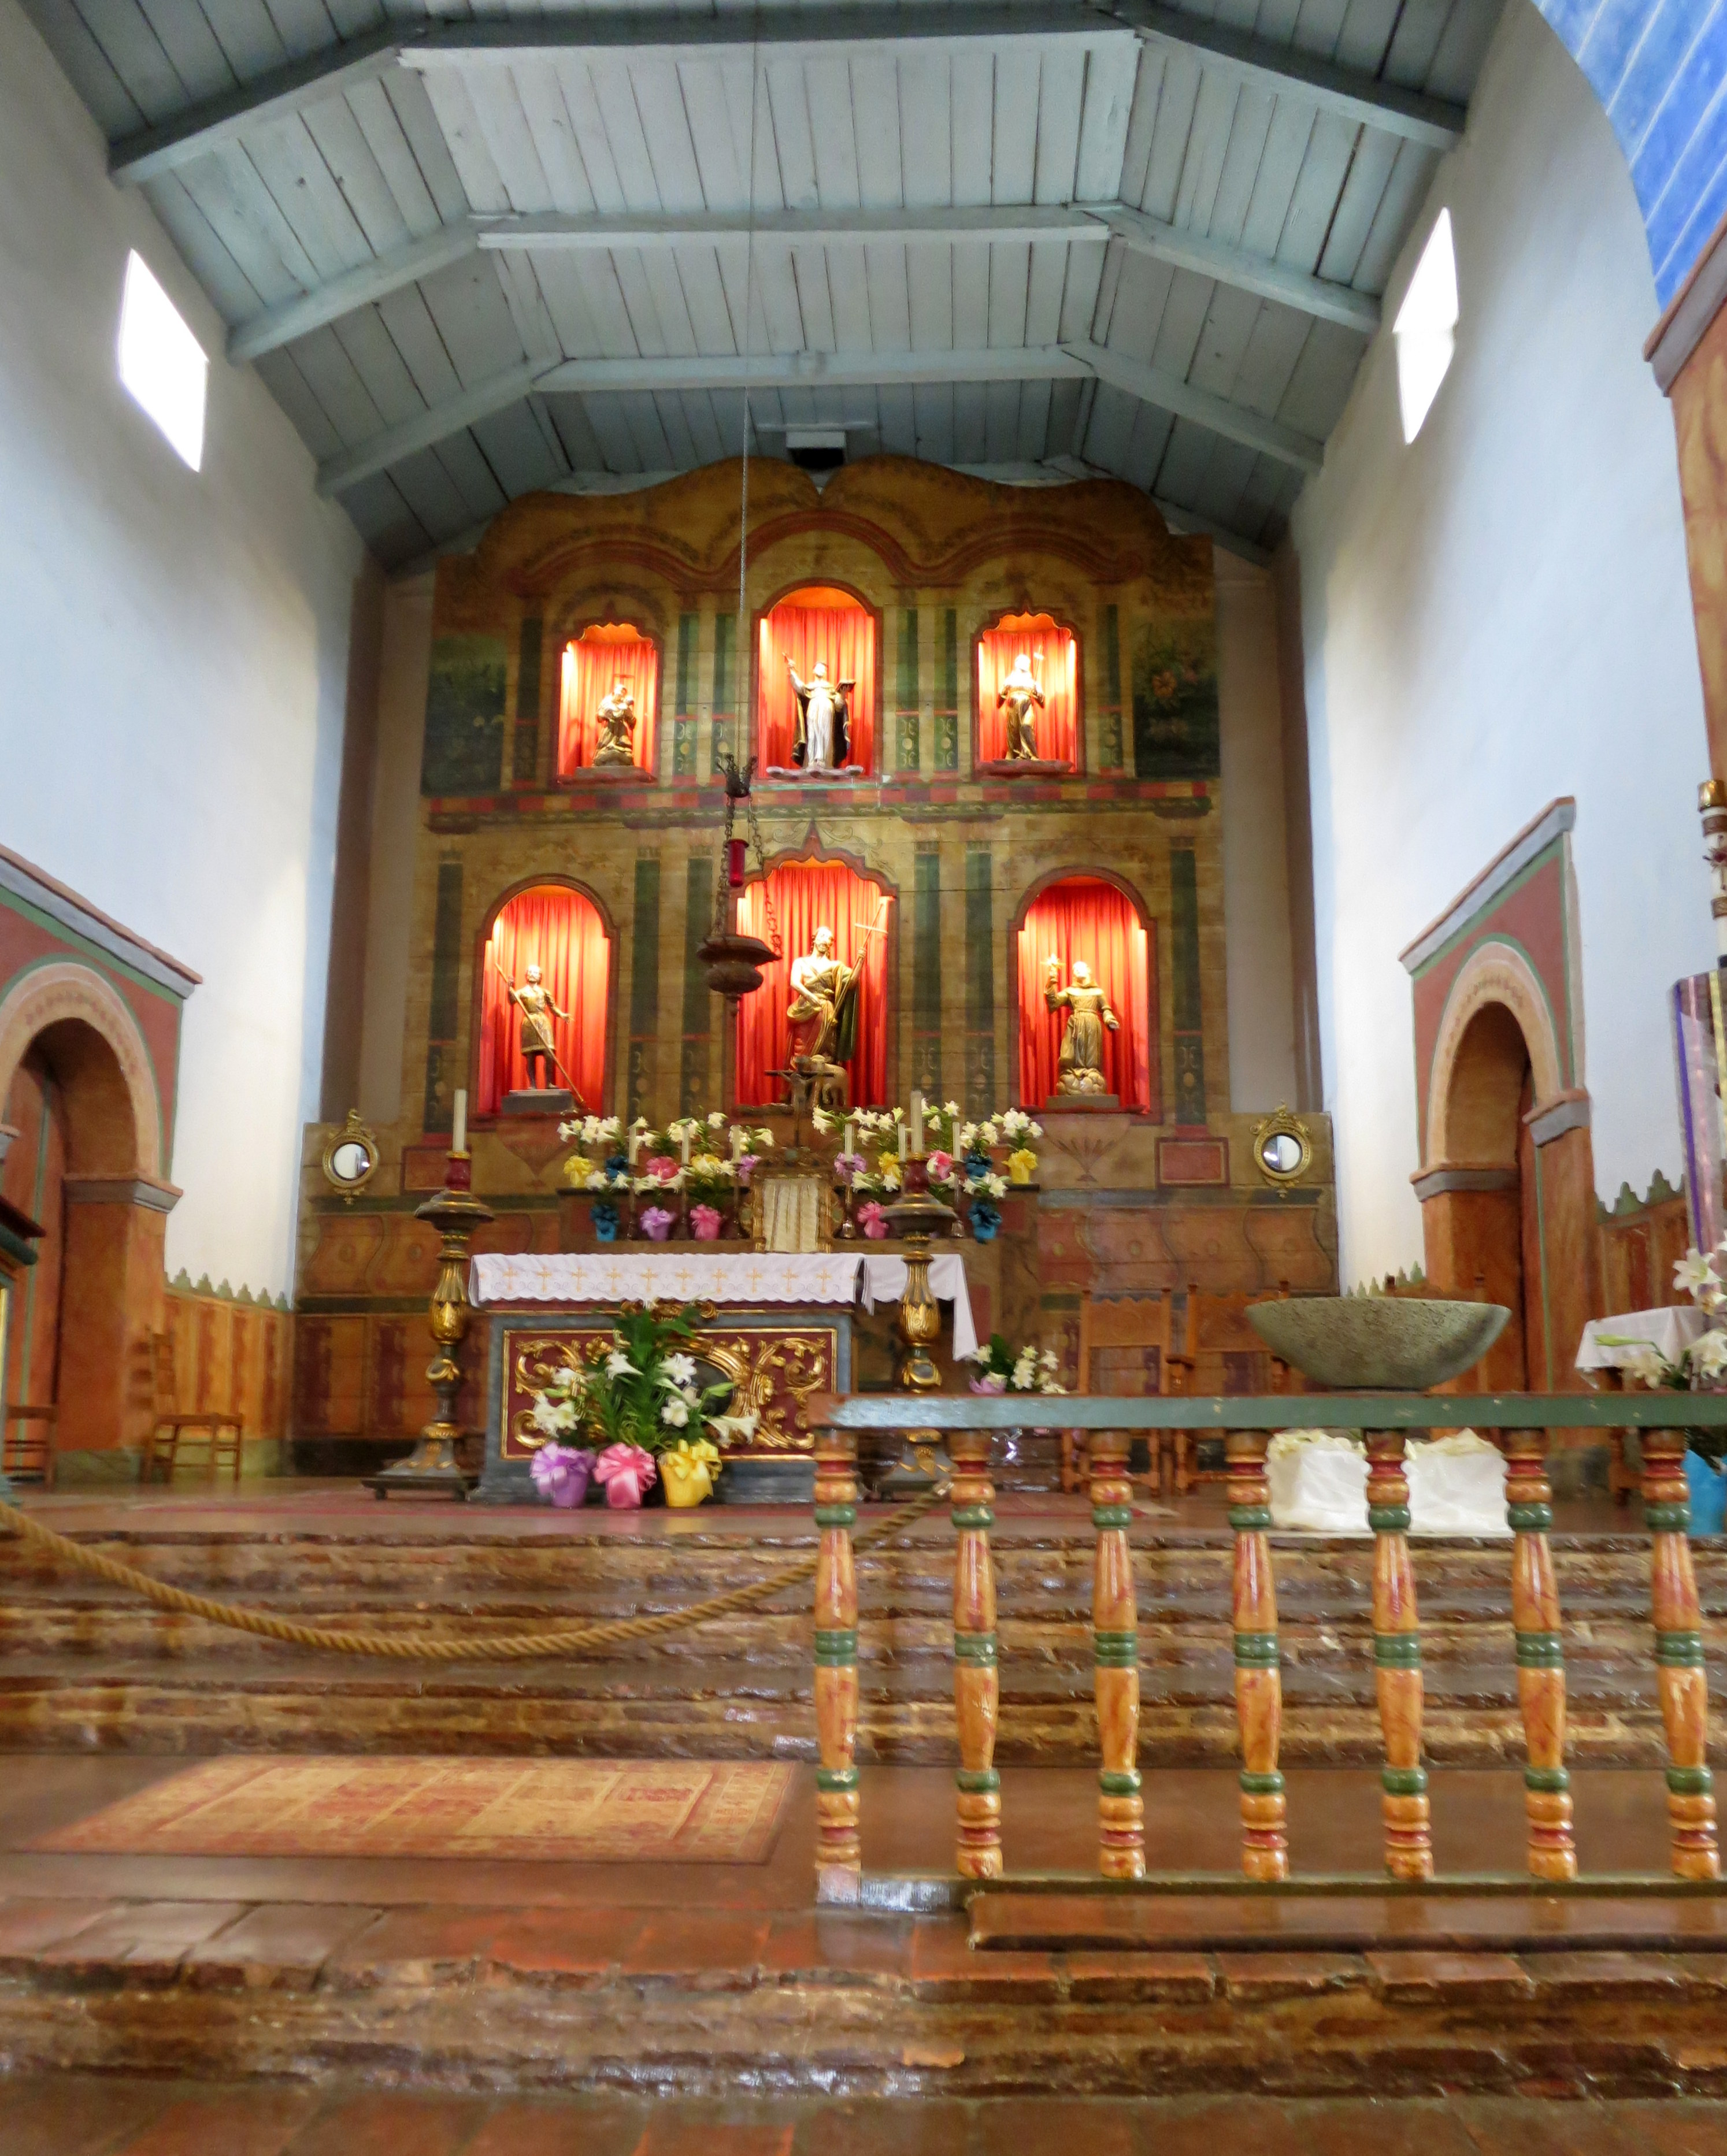 san juan bautista christian single women Rchurch church directory has information on san juan bautista catholic single 's group: special service times, and more our top ten states with christian.